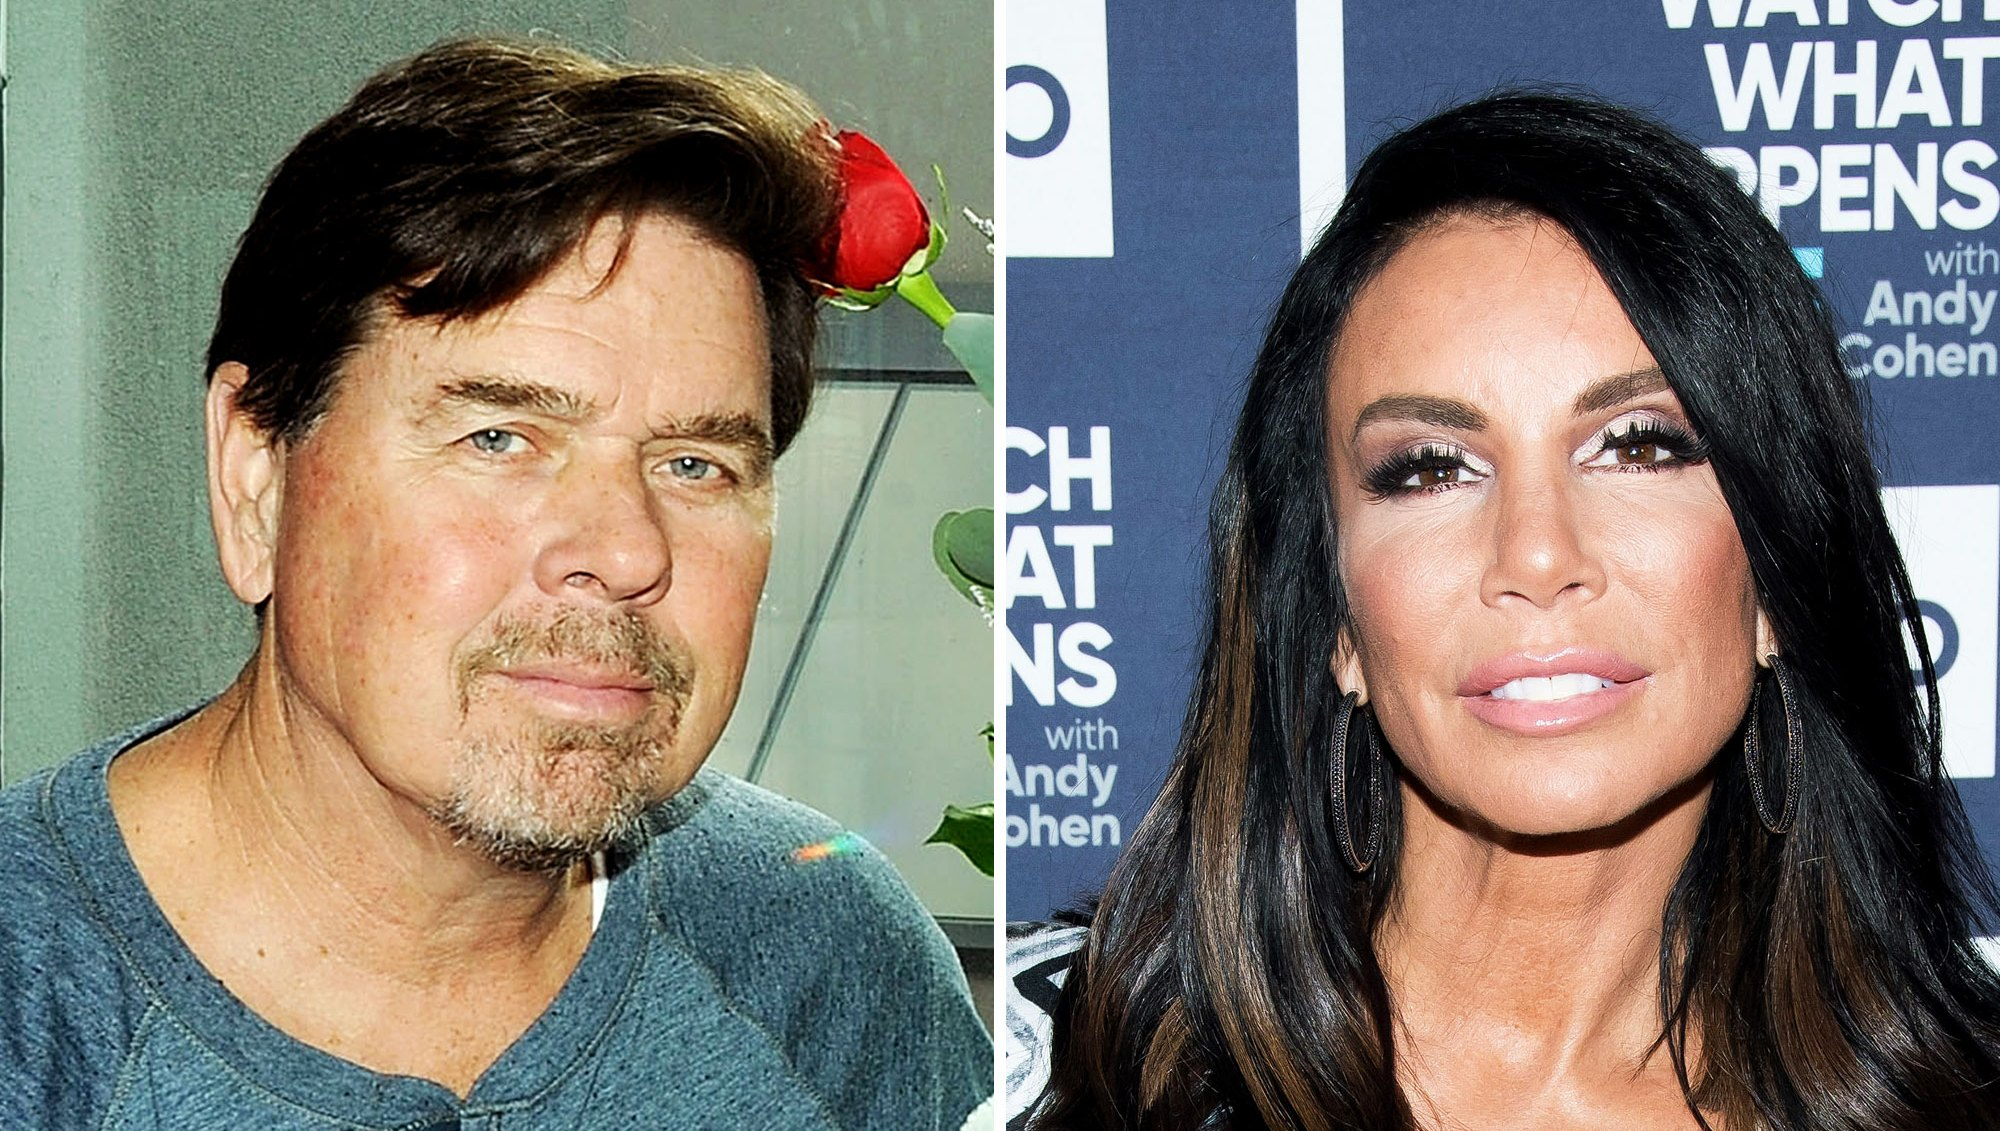 Danielle Staub Marty Caffrey hire divorce attorney